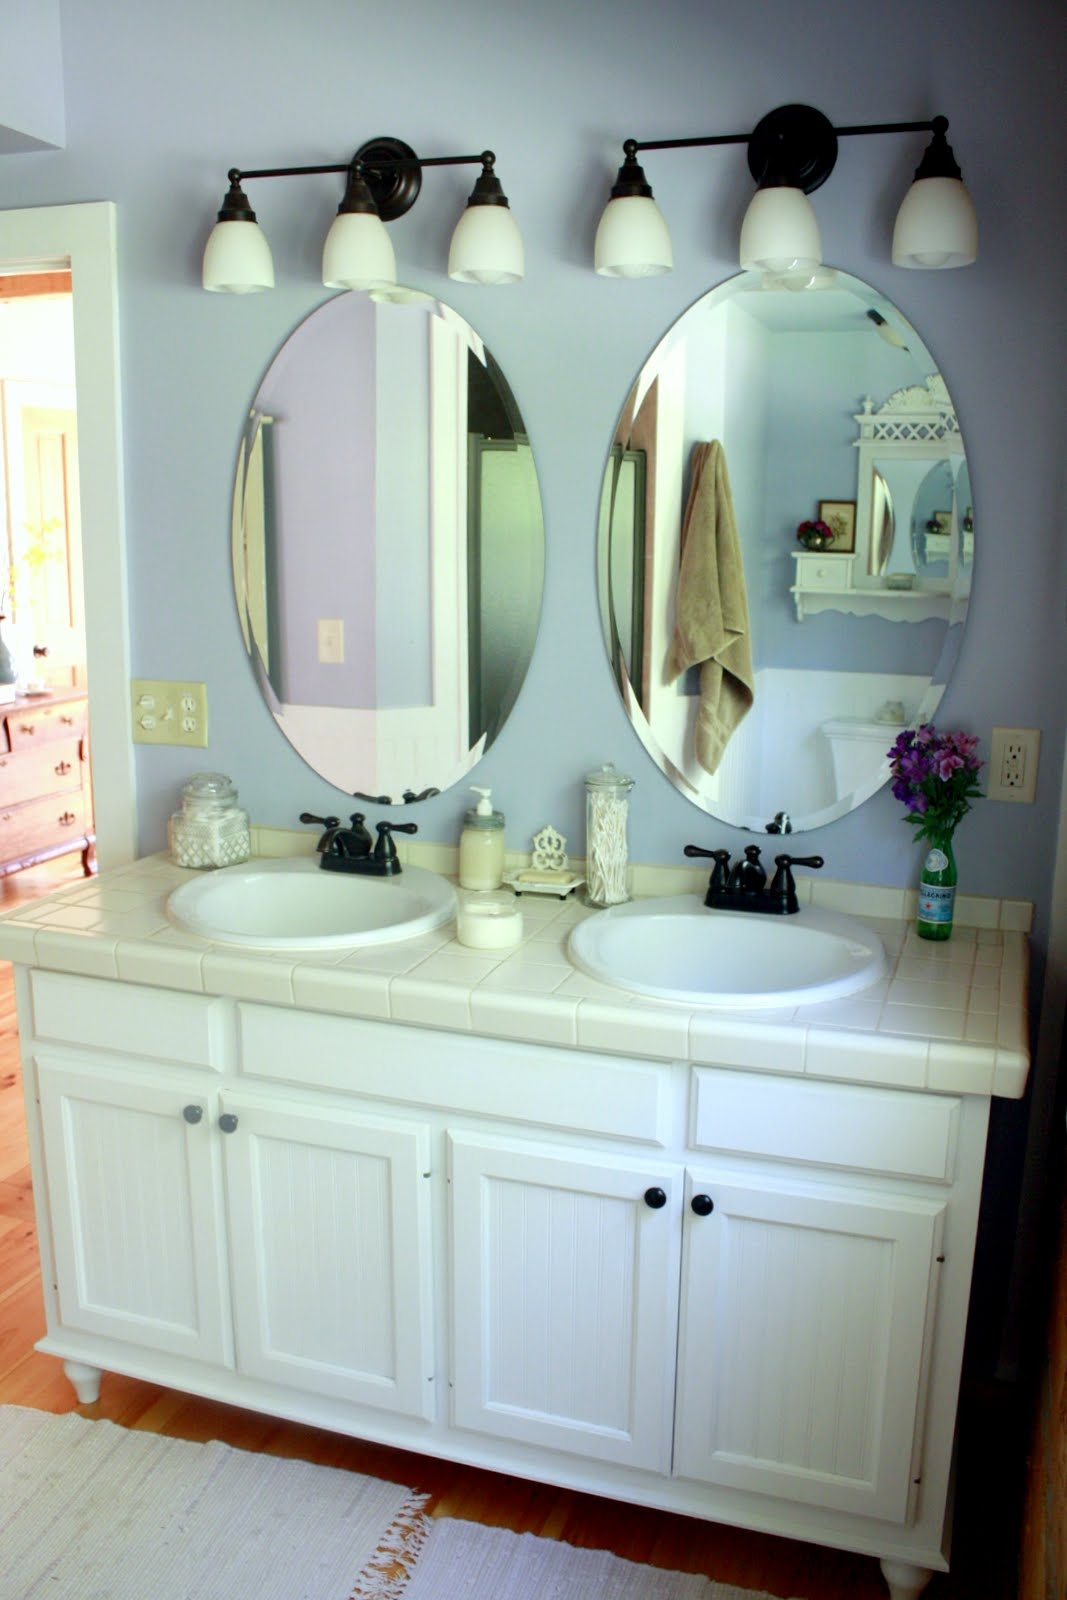 Oval Vanity Mirrors For Bathroombathroom bring a touch of calm elegance to your bathroom with